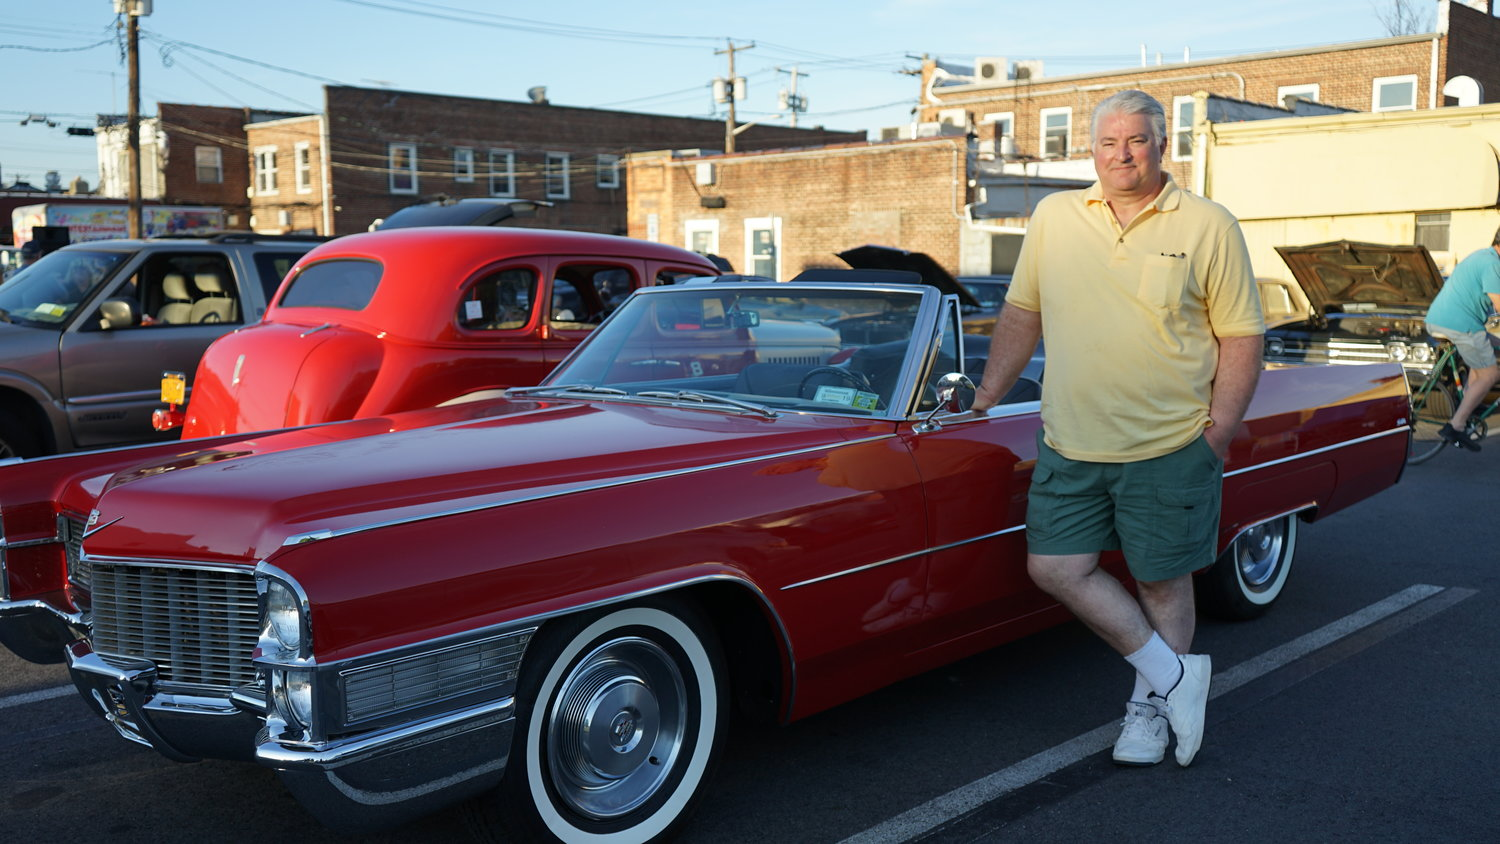 John Grande with his 1965 Cadillac DeVille